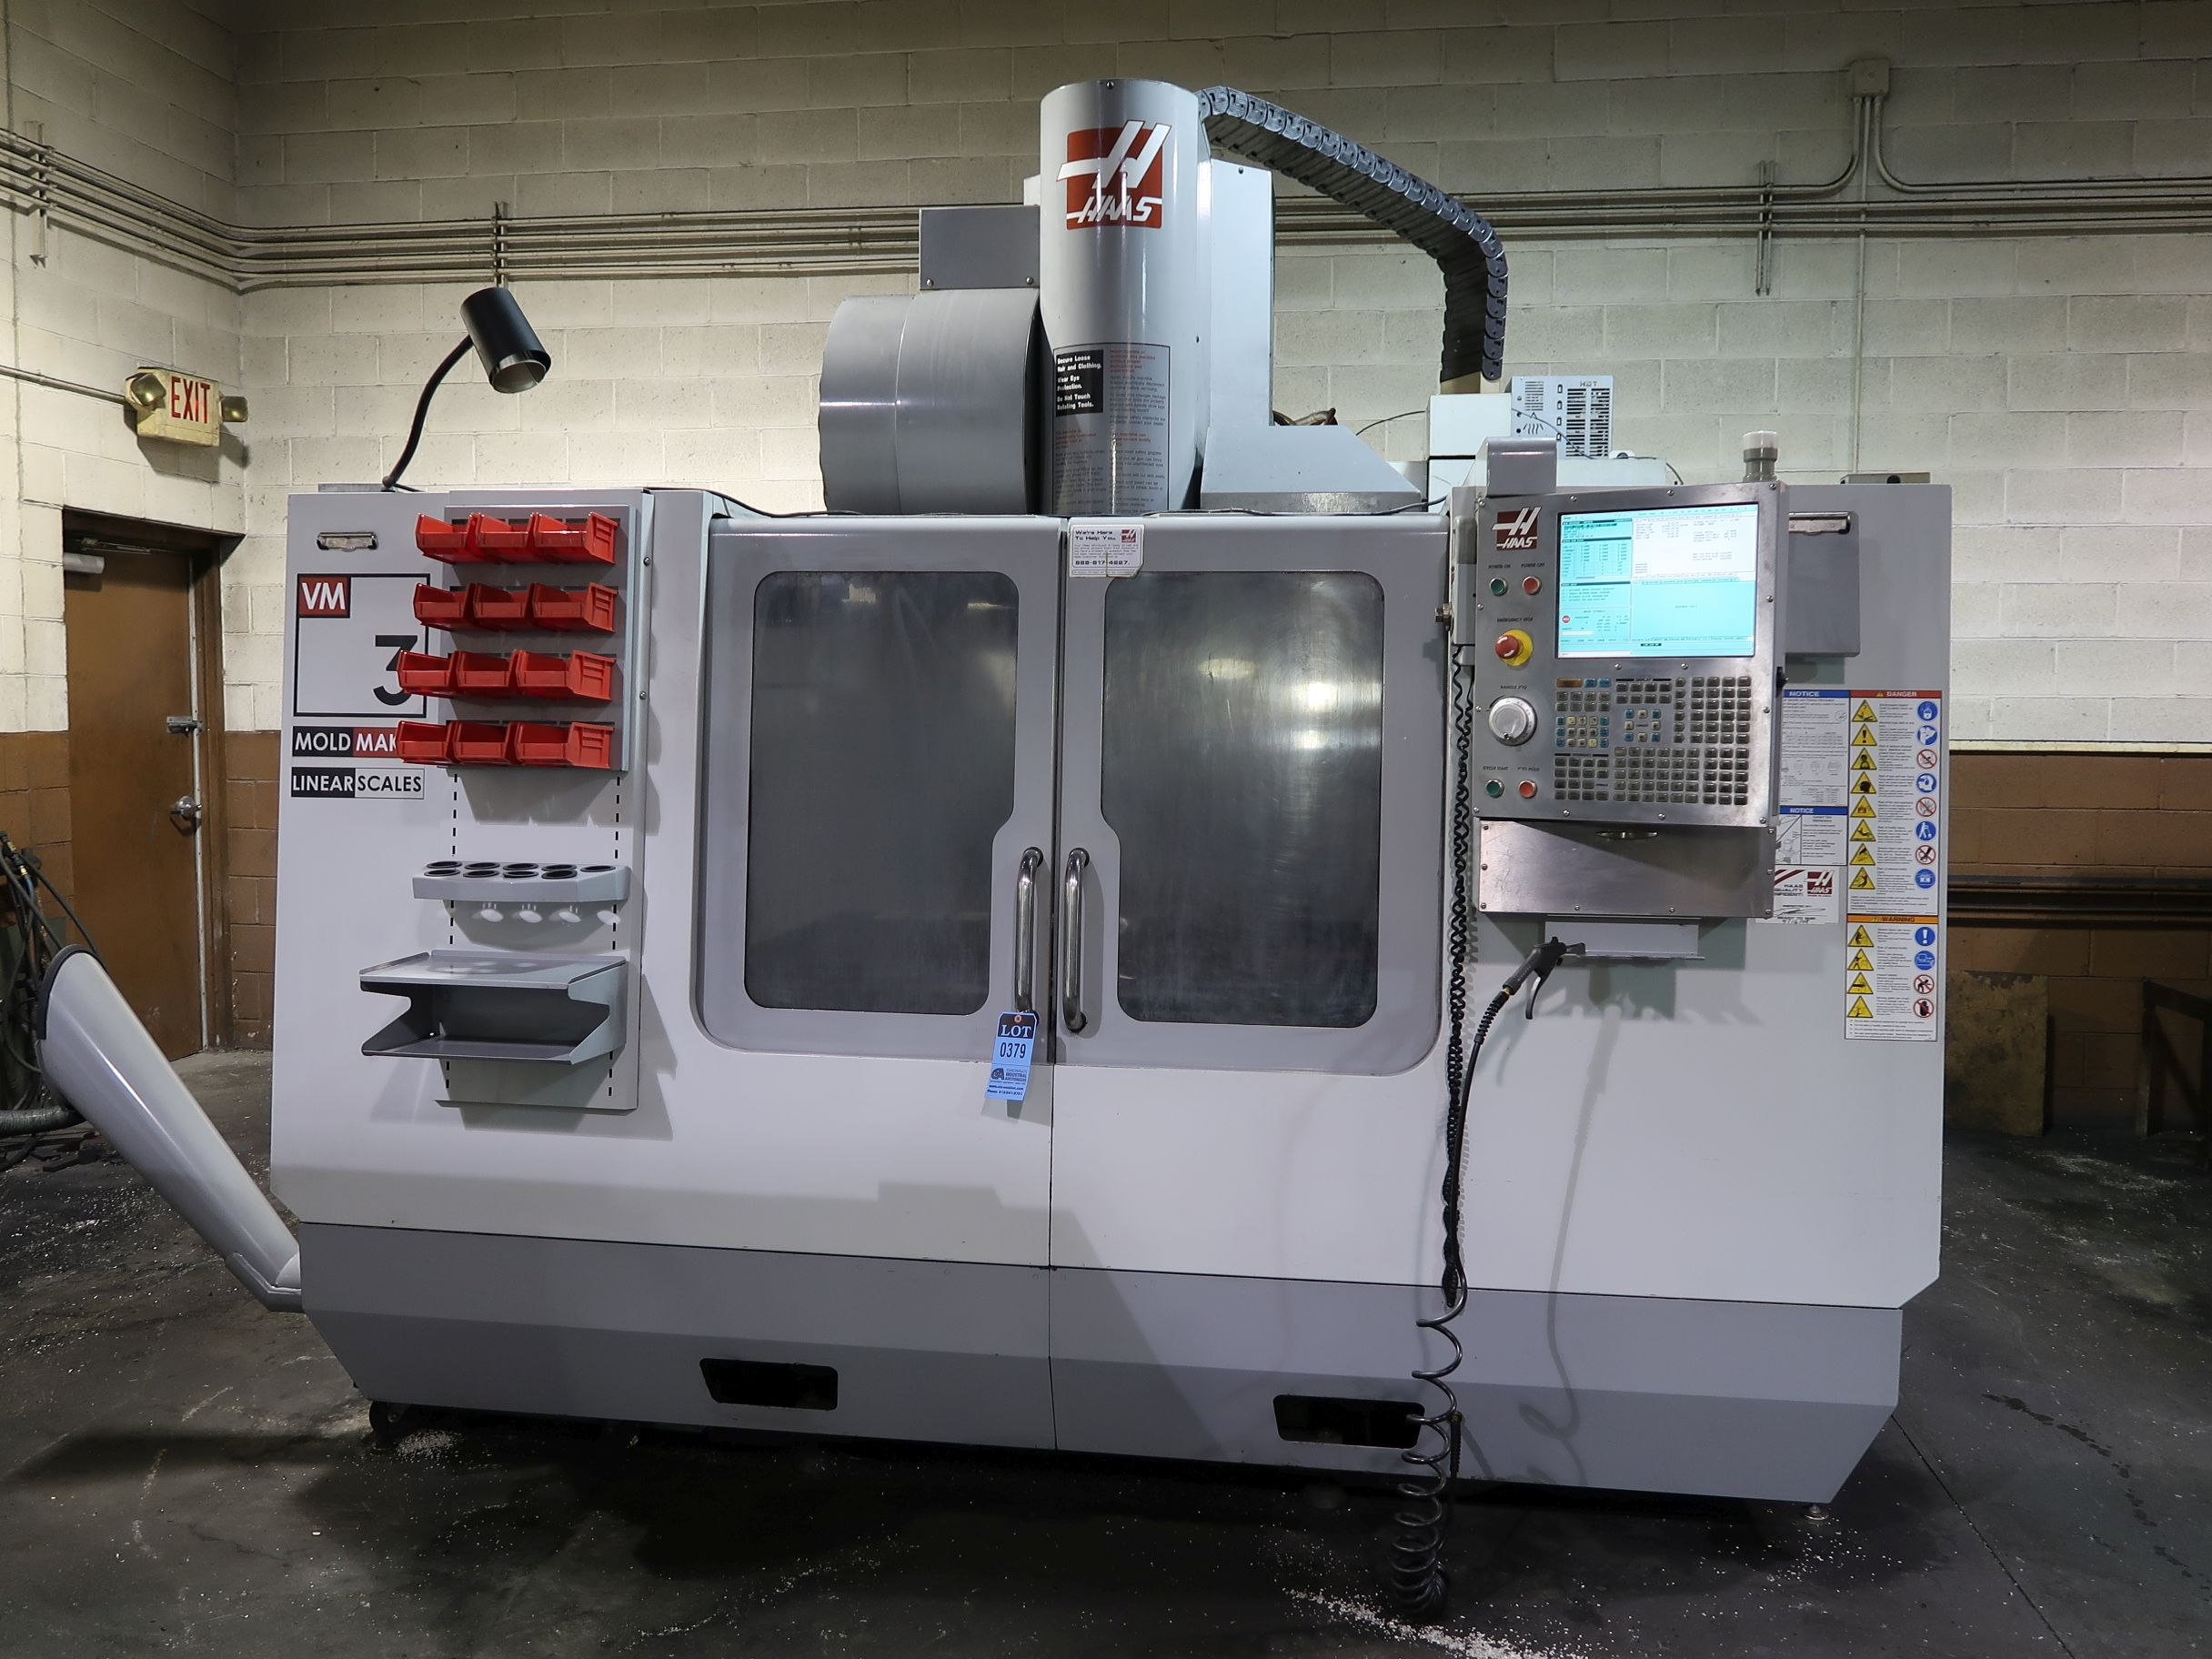 "HAAS VM-3 (MOLD MAKER) CNC VERTICAL MACHINING CENTER, 40""/26""/25"" Travels, 40 Taper, 12K Spindle, 30 Position Side Mount Tool Changer, Scales, Wireless Probing, Auger, (2) Available 2008/2012"